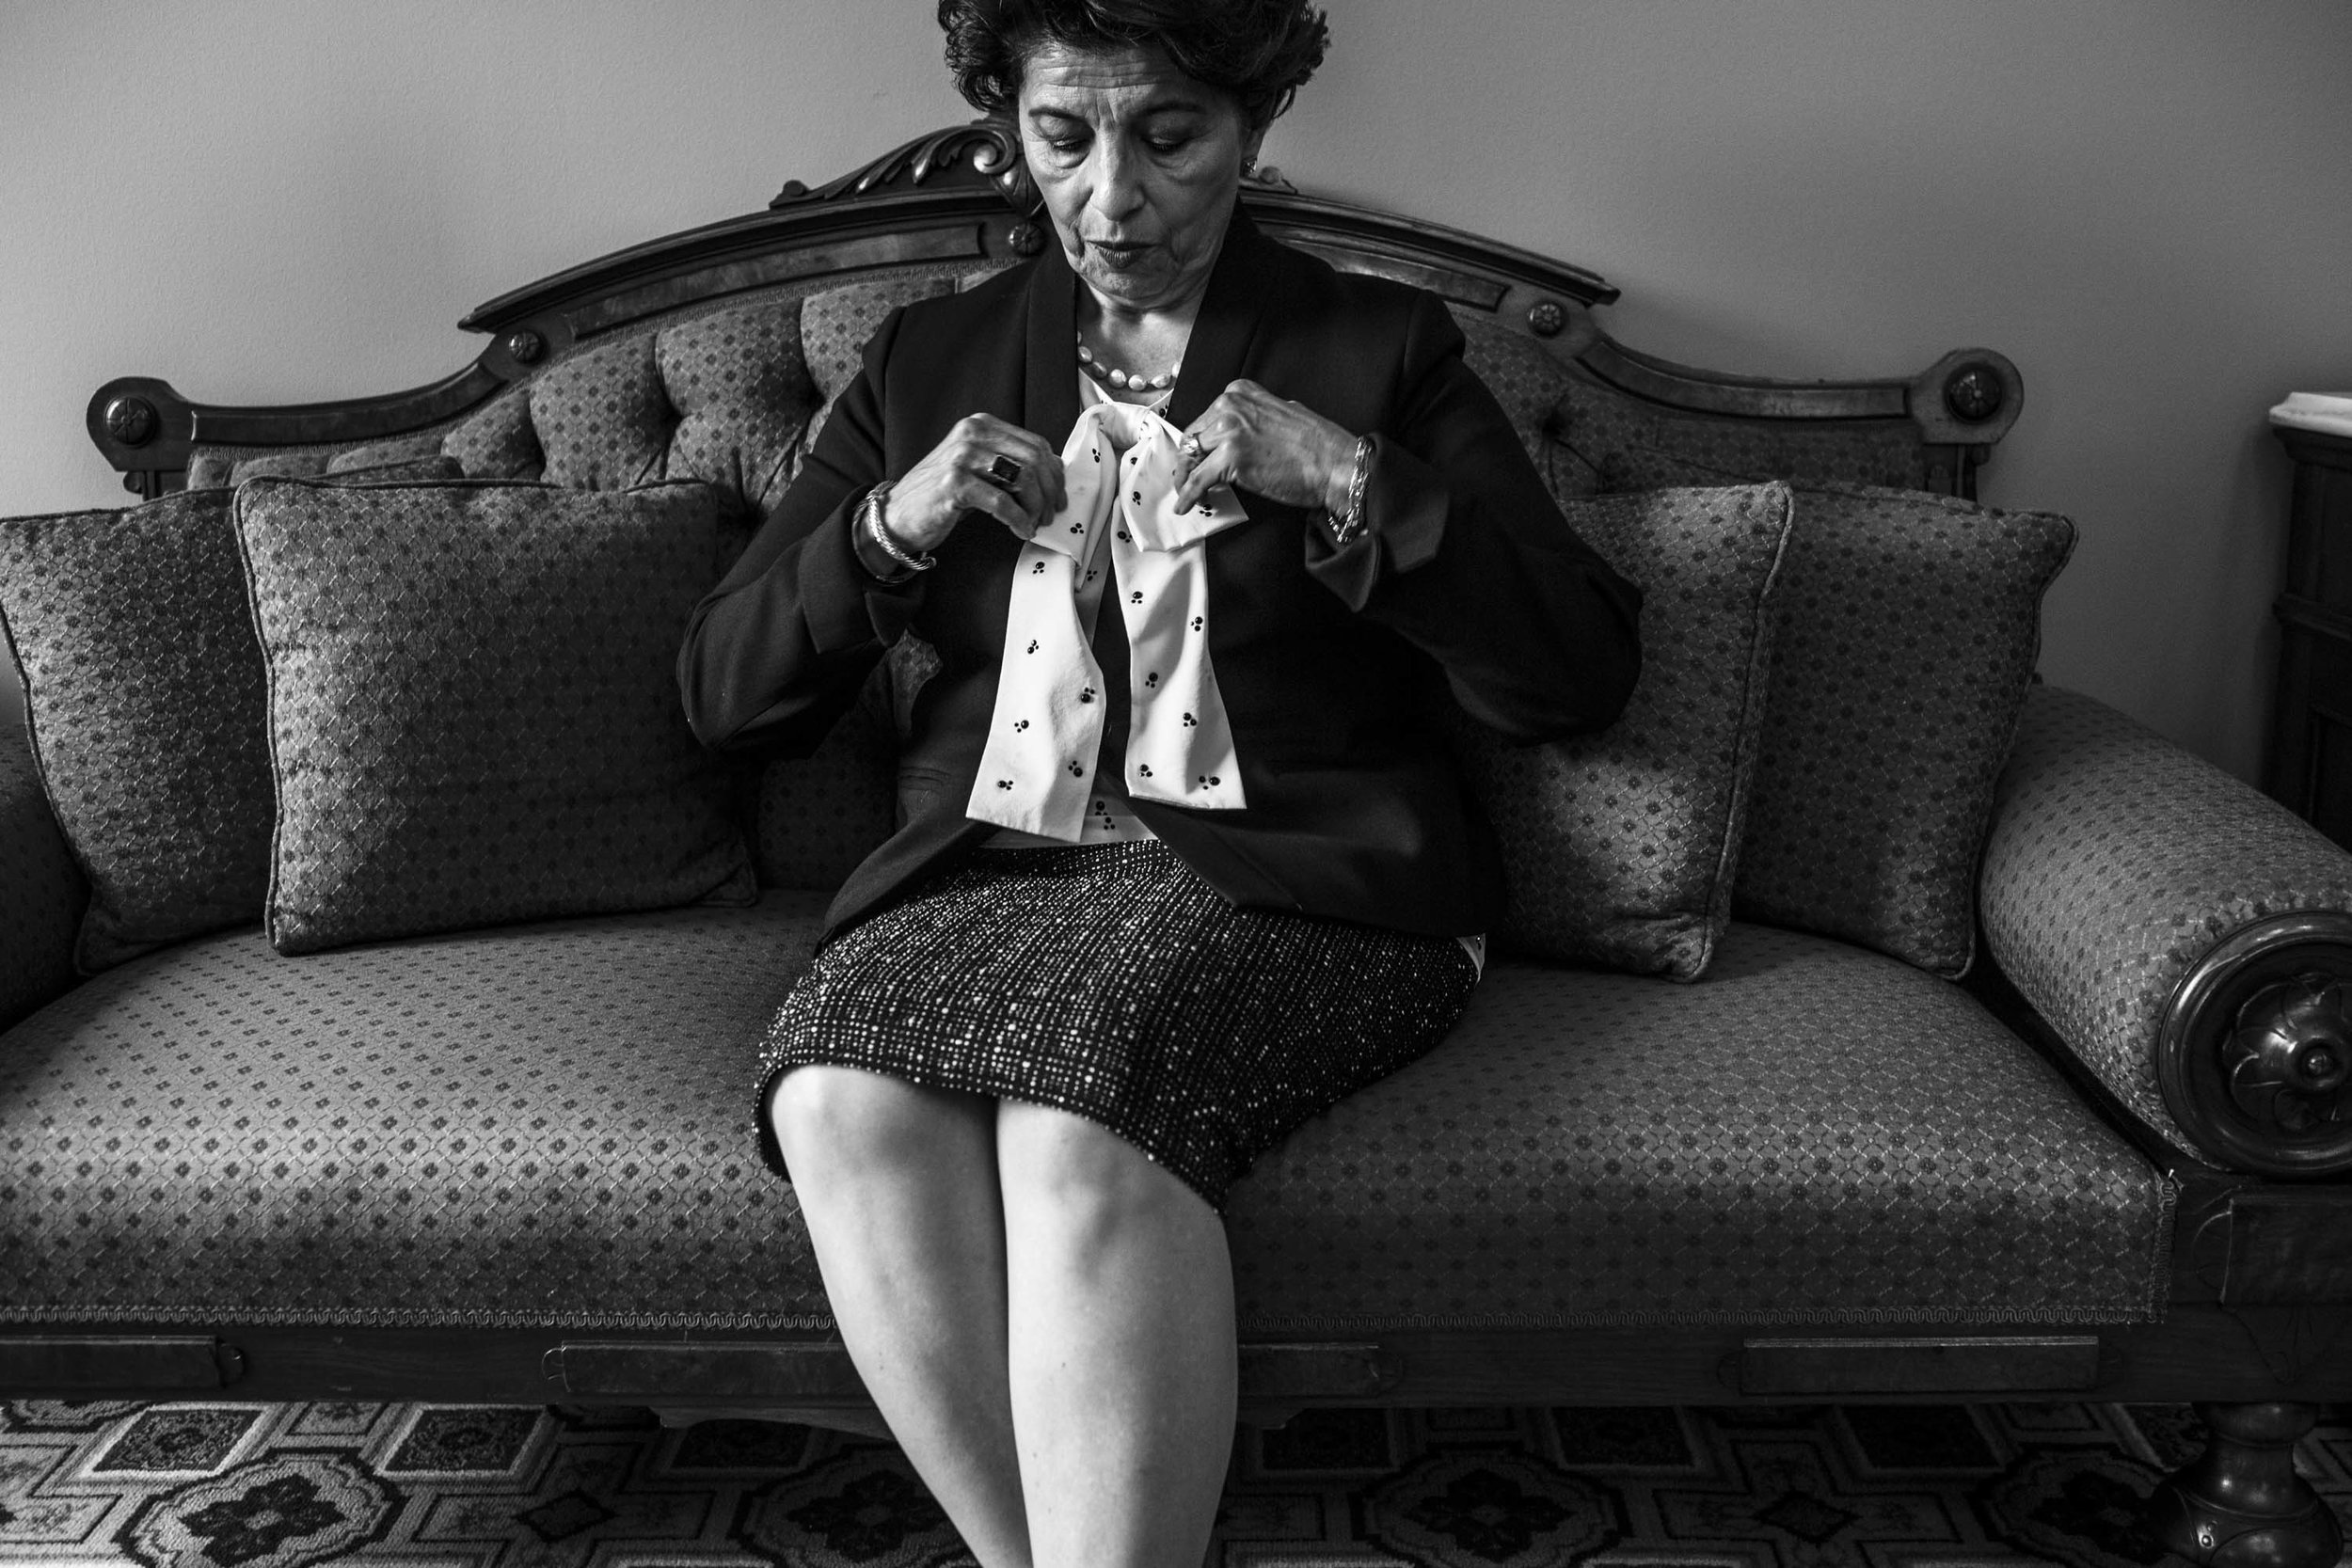 US Treasurer Jovita Carranza prepares for a photo shoot in her office in Washington, DC.